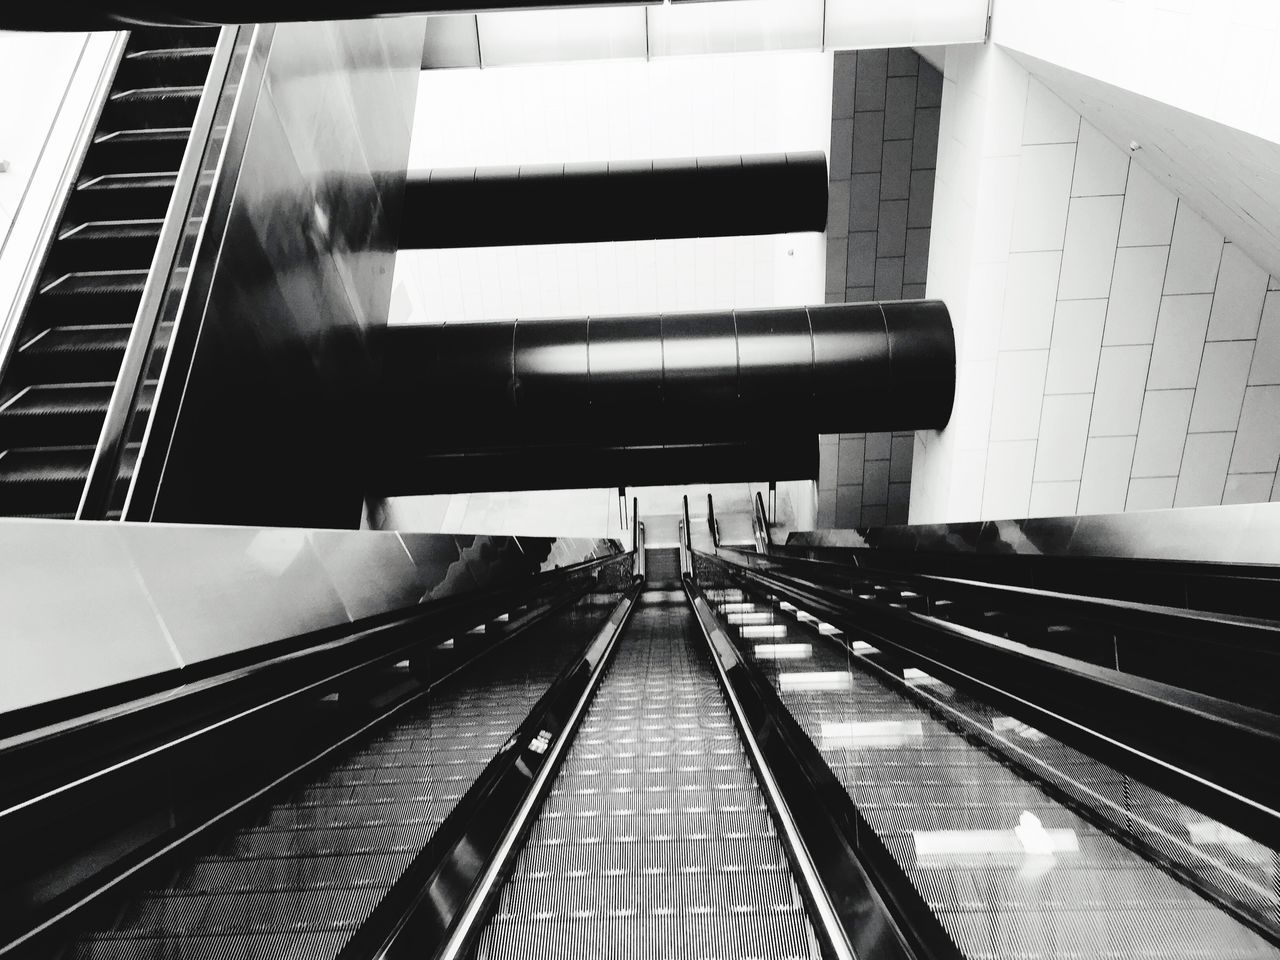 High Angle View Of Empty Escalators In Building